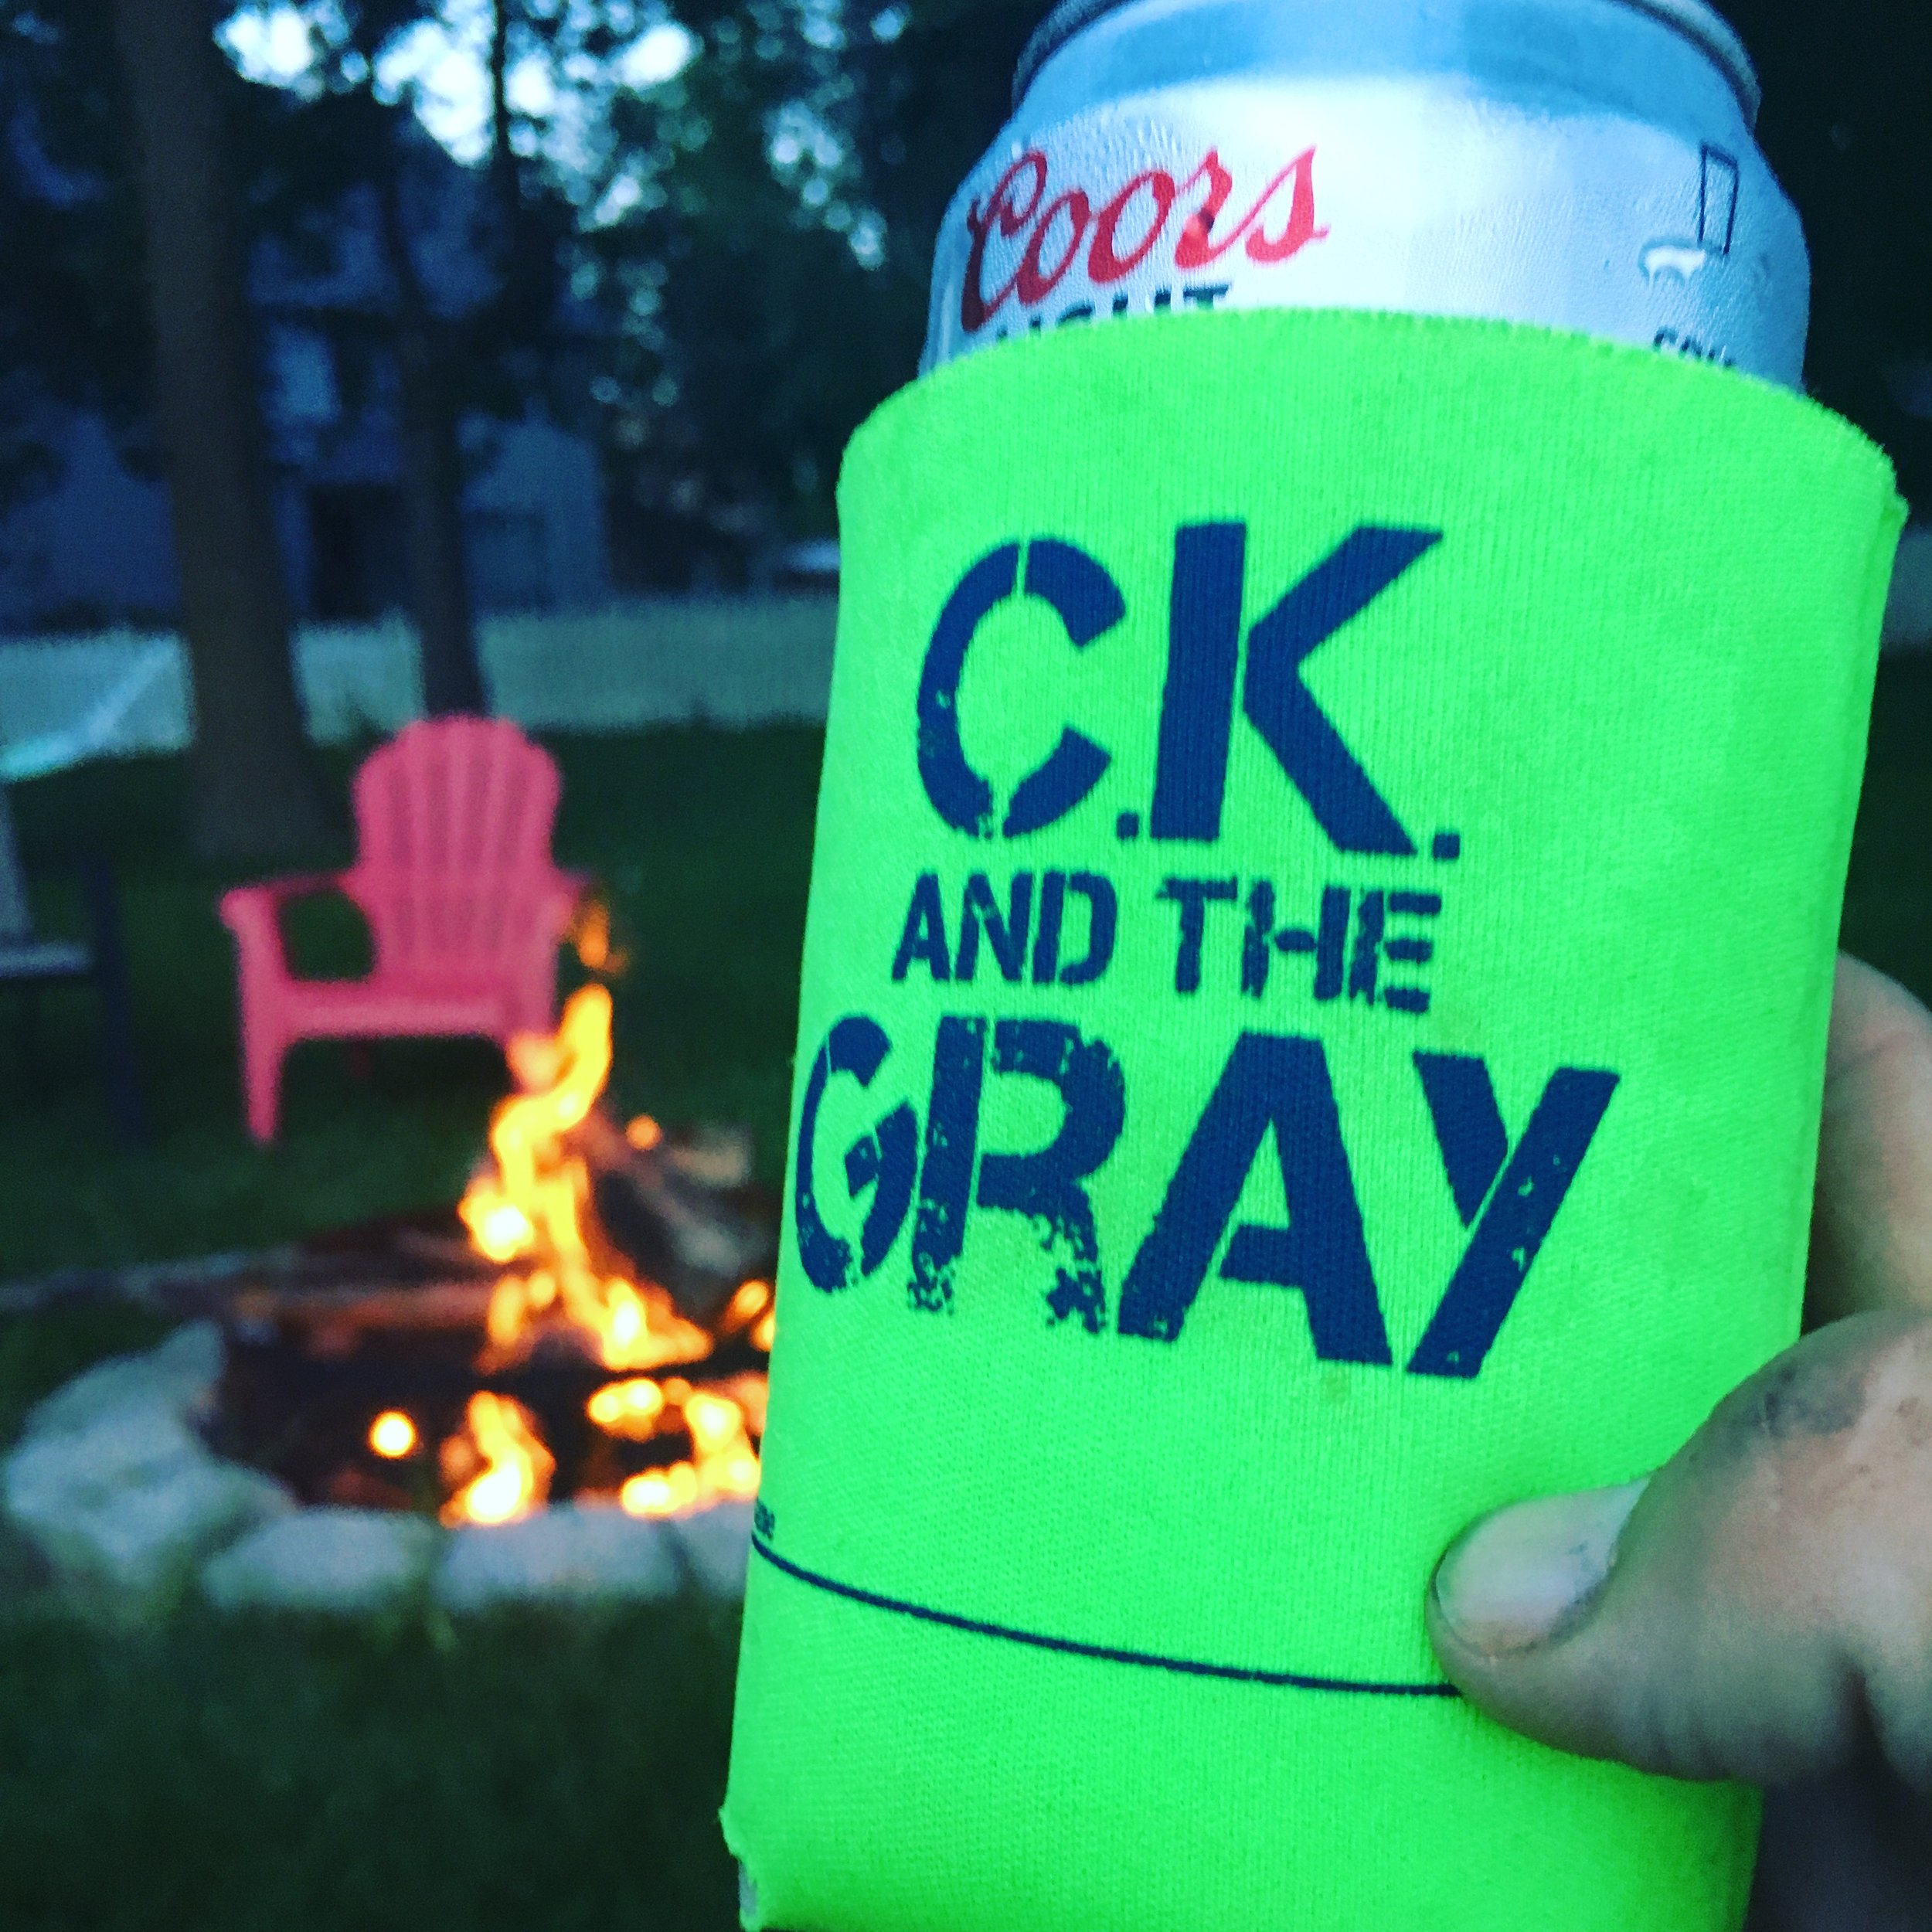 #ckcancooler - Can Cooler Challenge - C.K. and The Gray